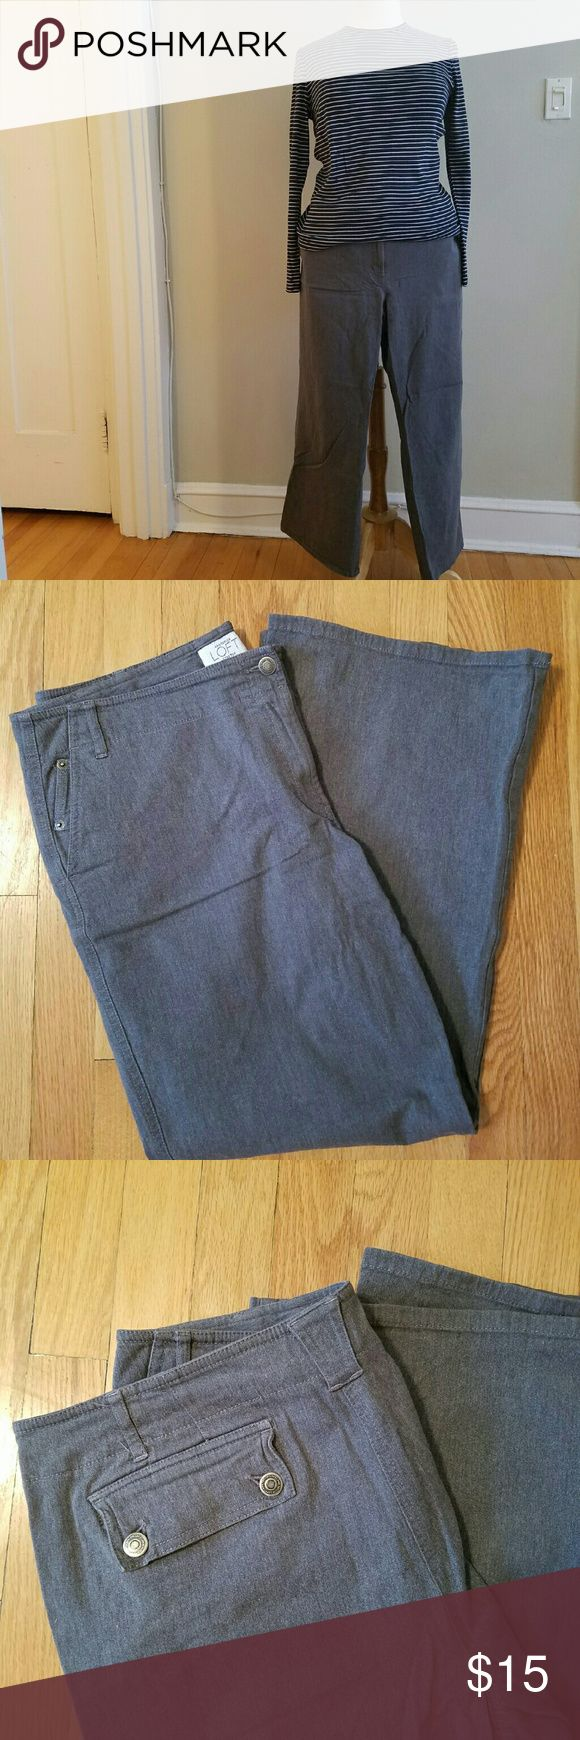 """Anne Taylor Loft Gray Jeans Anne Taylor Loft wide-leg gray jeans with short (27"""" inseam). Great for casual days! Cute button pockets on back.   Pre-worn,  pet/smoke free home. Anne Taylor Loft Jeans Flare & Wide Leg"""